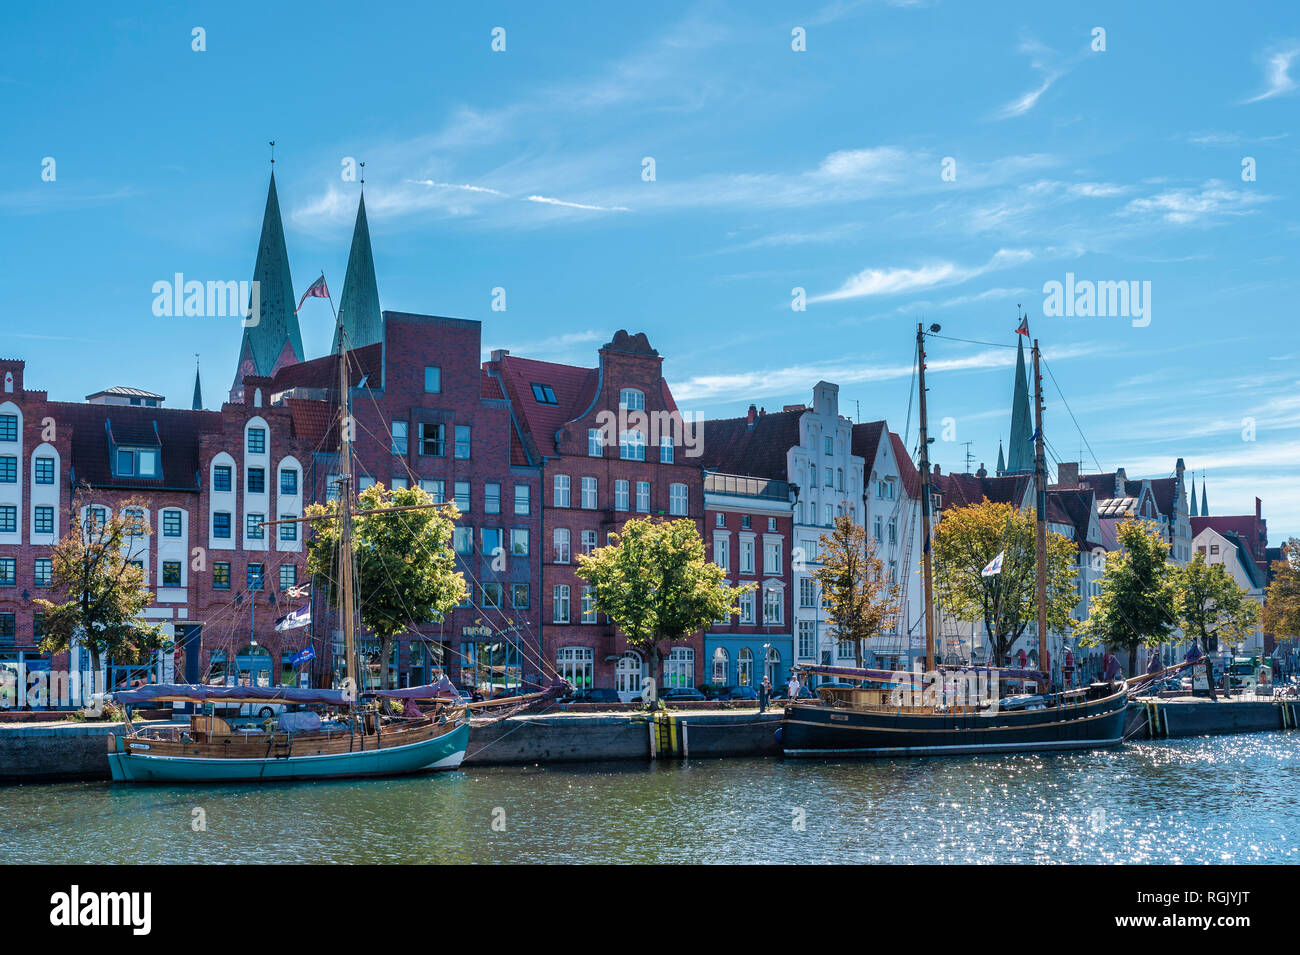 Germany, Schleswig-Holstein, Luebeck, Trave, Lower Trave river, Sailing ships - Stock Image